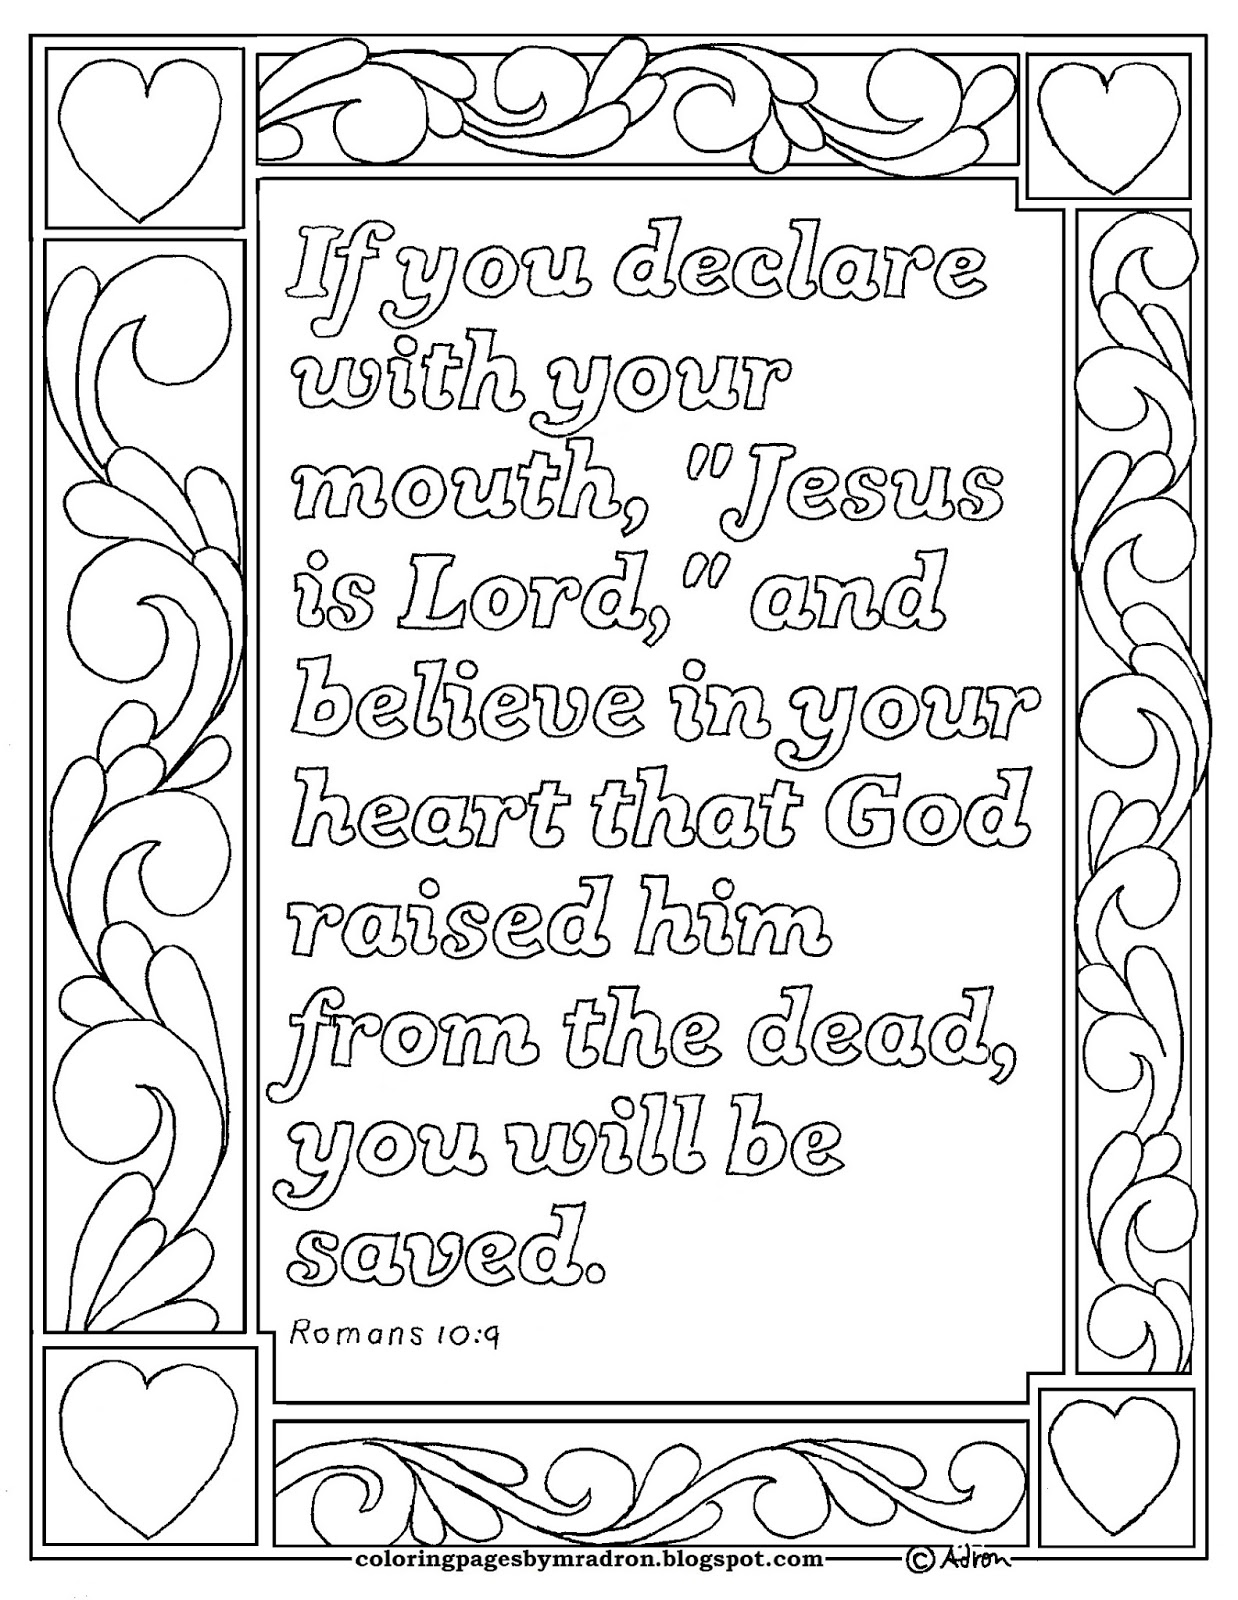 romans 5 8 coloring sheet coloring pages for kids by mr adron in everything god sheet romans 5 coloring 8